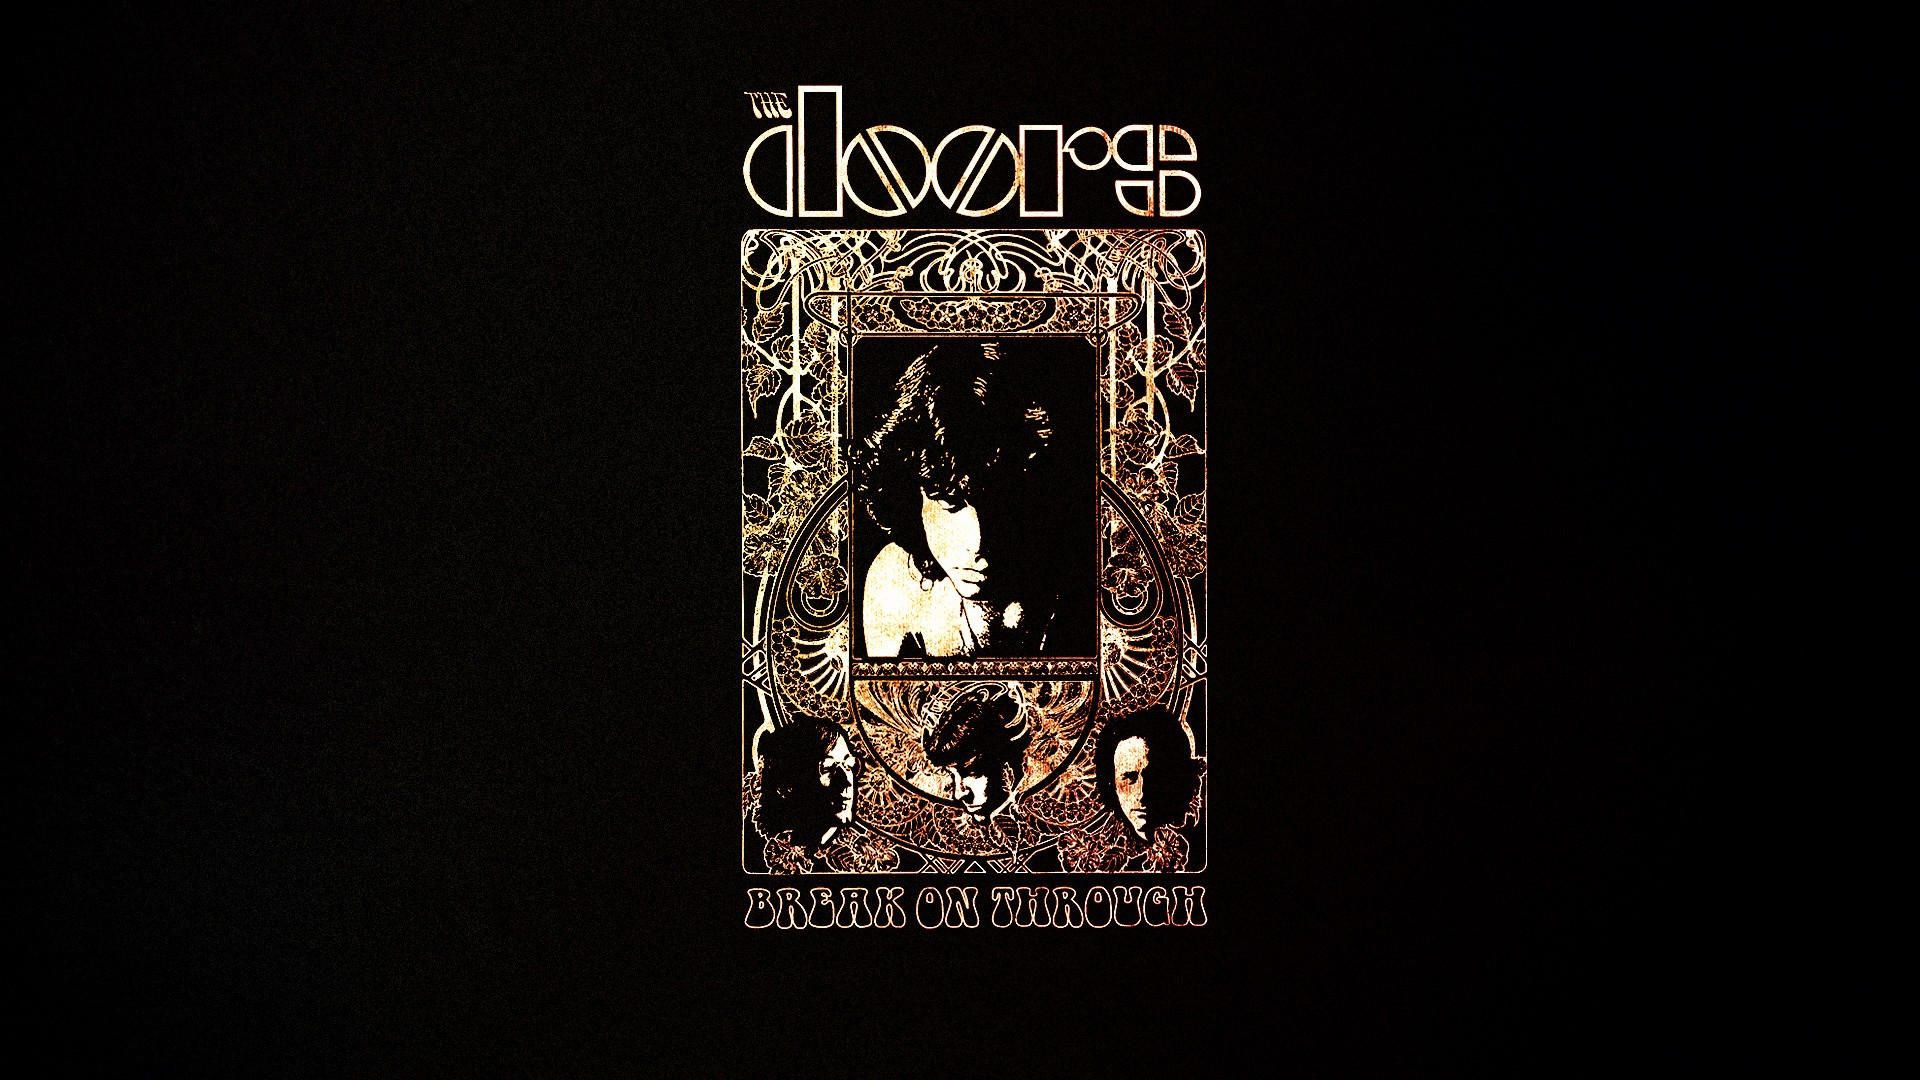 the doors images hd - photo #5